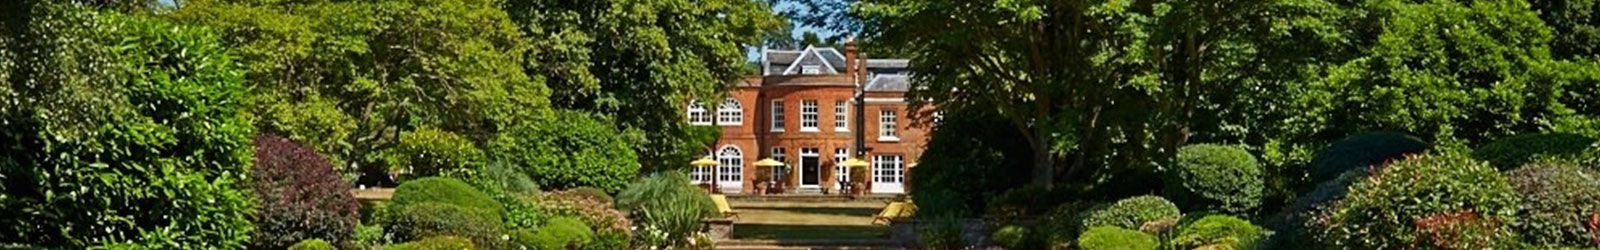 About English Country Hotels